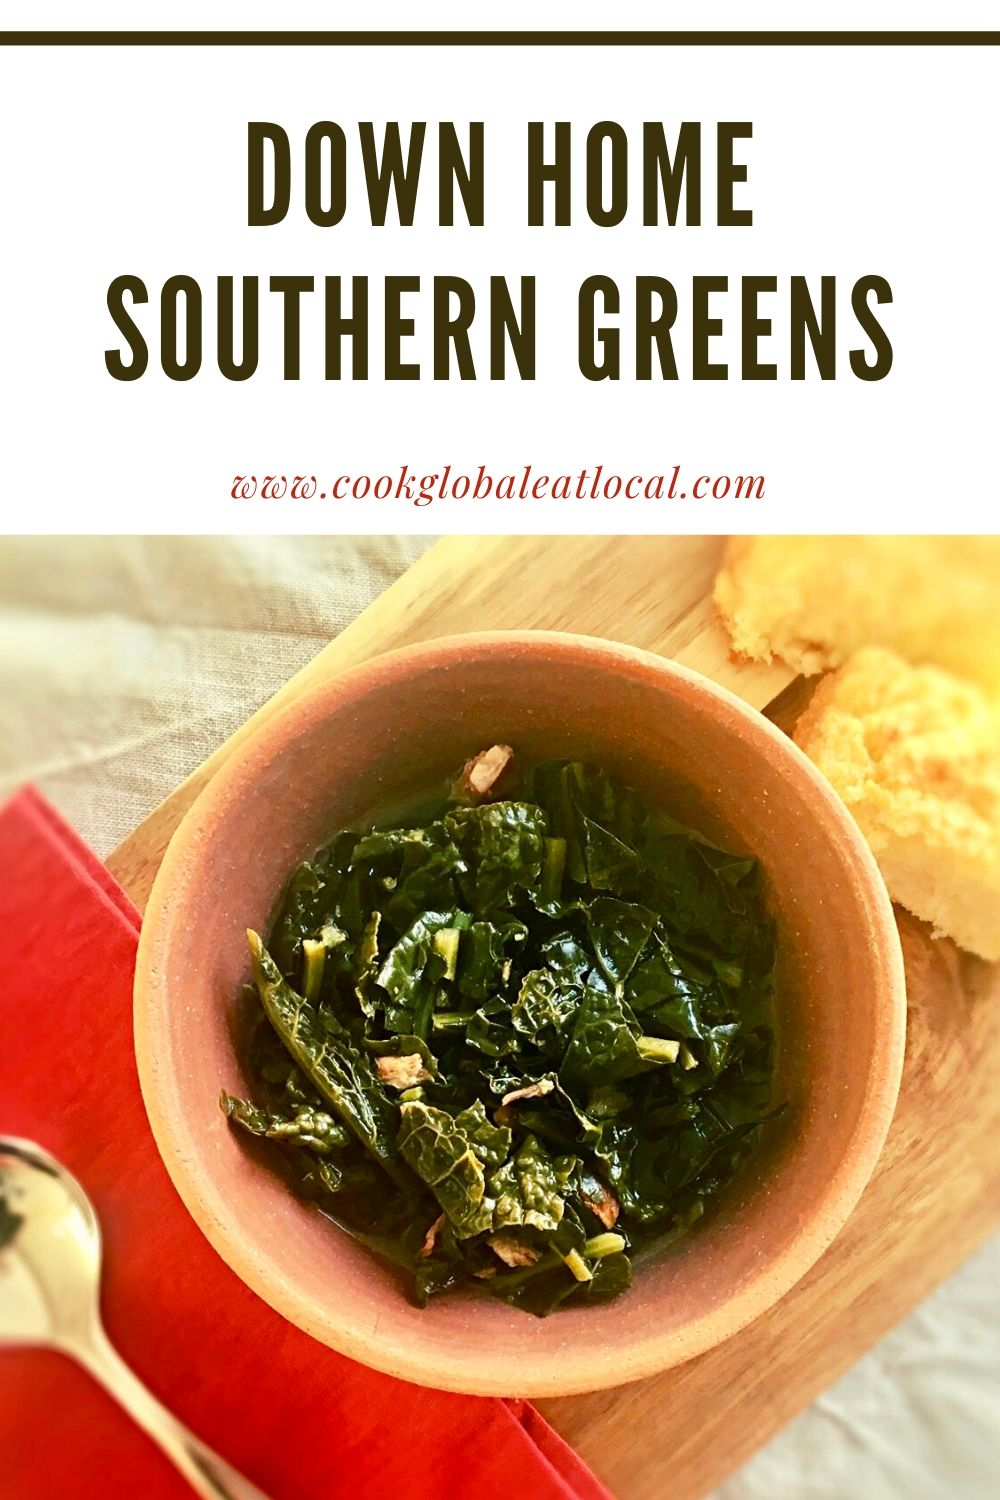 Down Home Southern Greens | cookglobaleatlocal.com